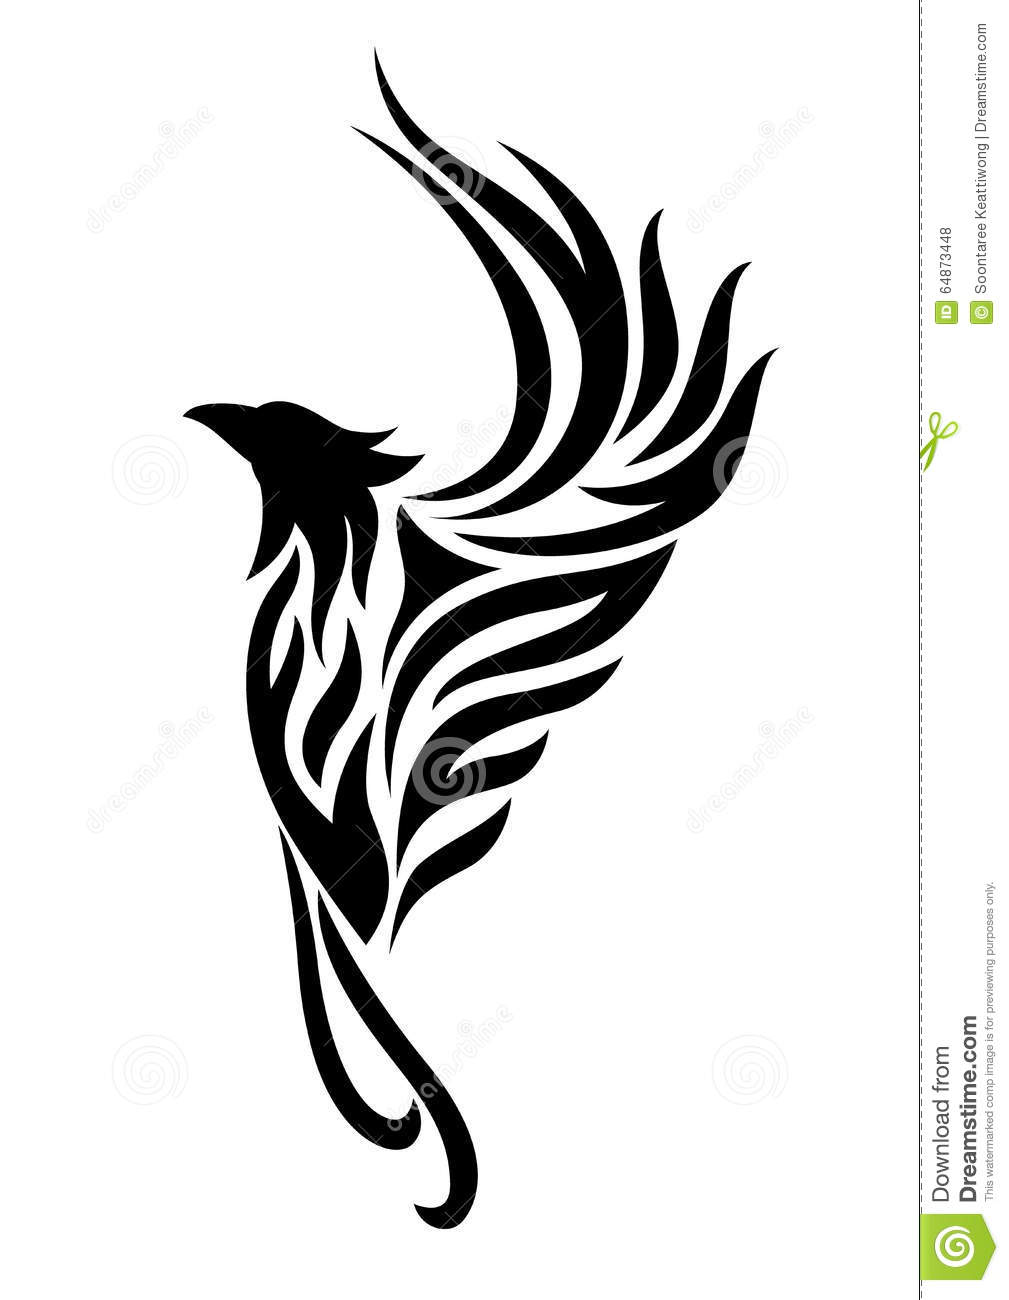 phoenix tattoo clipart stock illustration illustration of tattoo rh dreamstime com tattoo clipart tattoo clipart